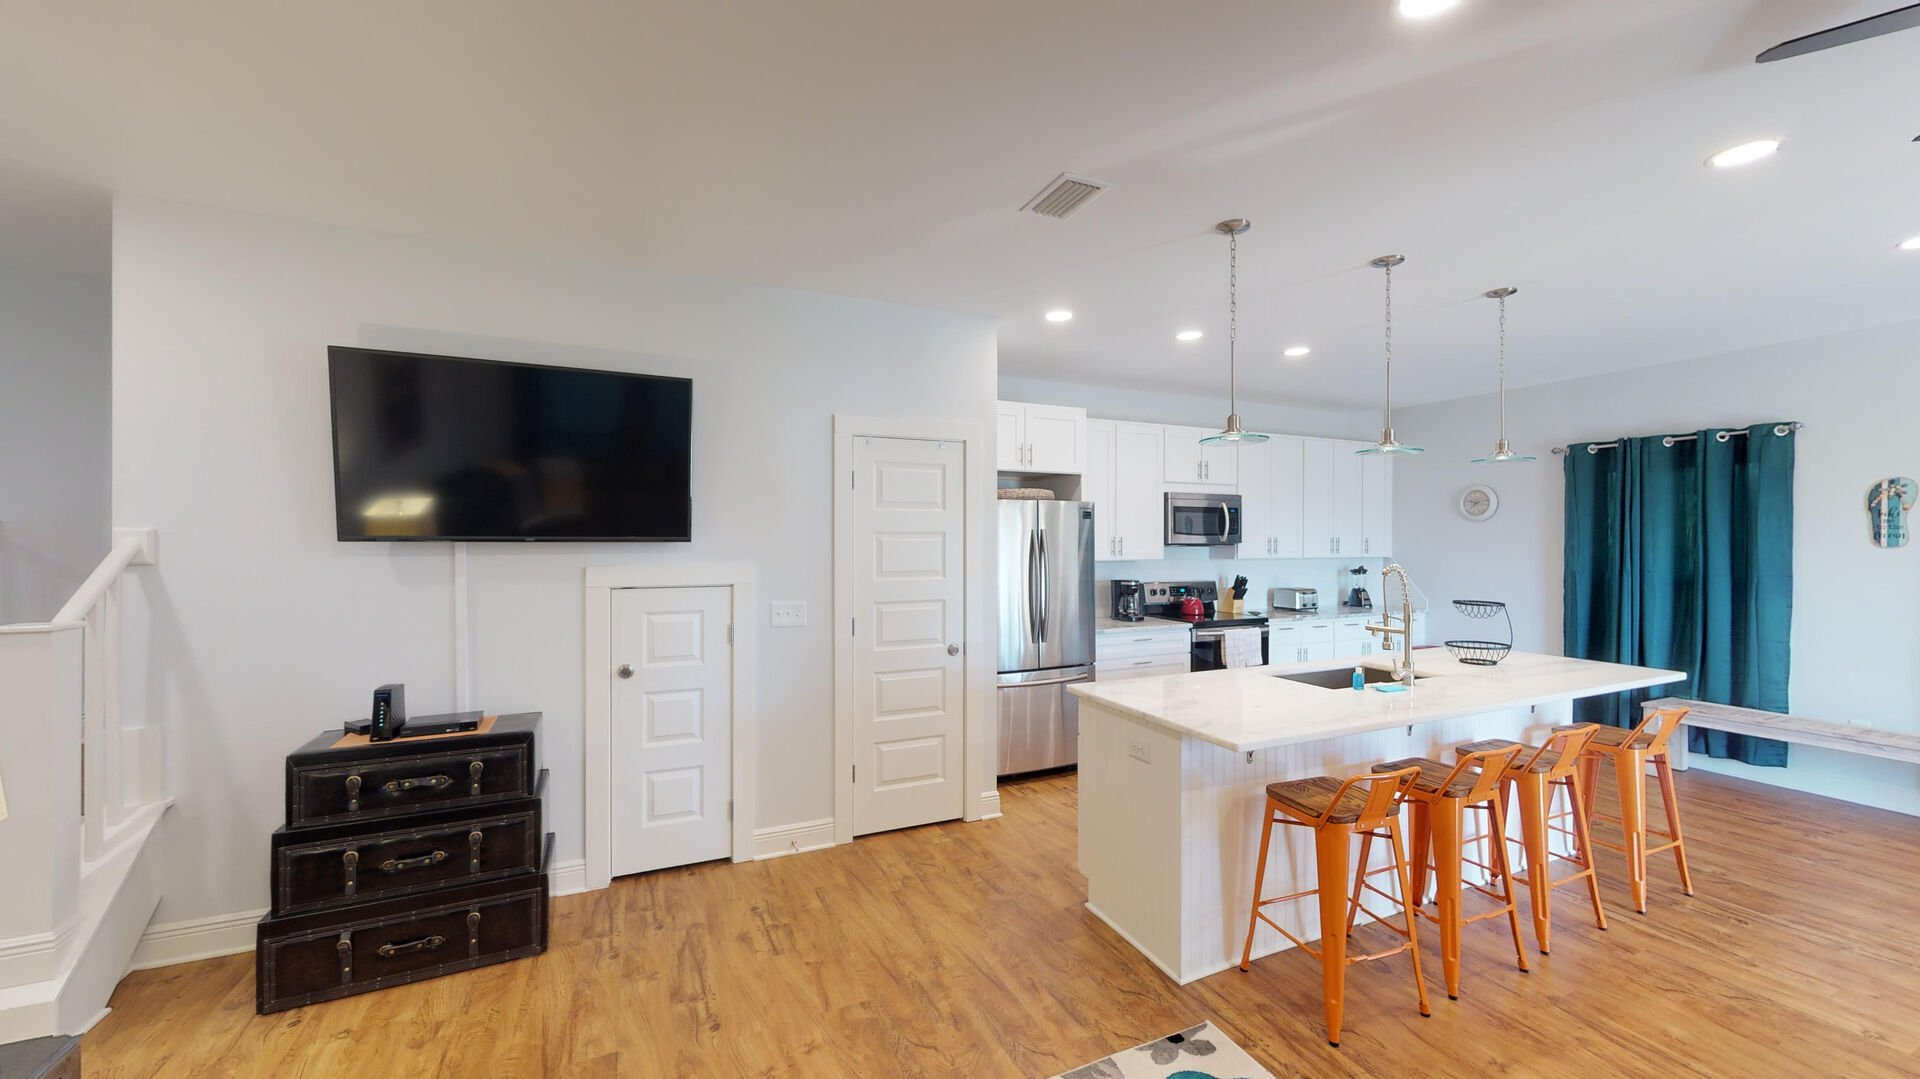 Kitchen with Island, Stools, Refrigerator, Microwave, and TV.